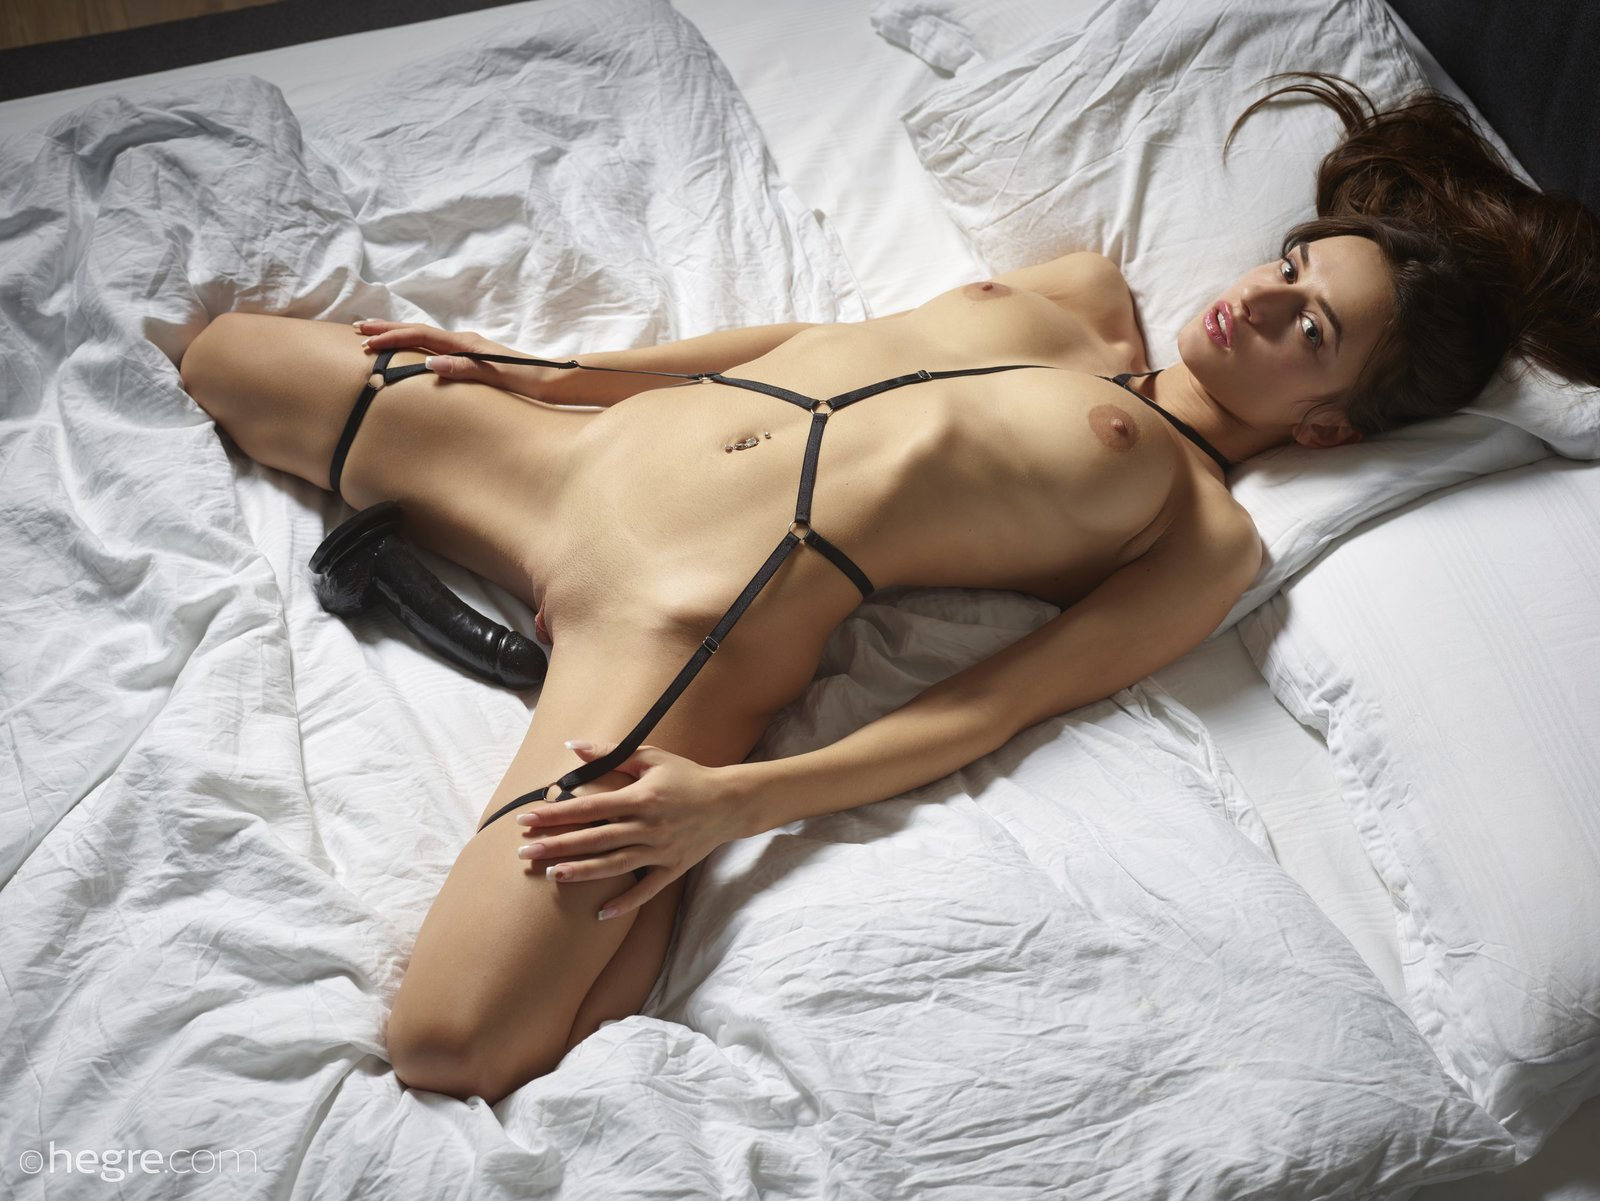 Cameron in Bed Games by Hegre-Art (16 photos) | Erotic ...